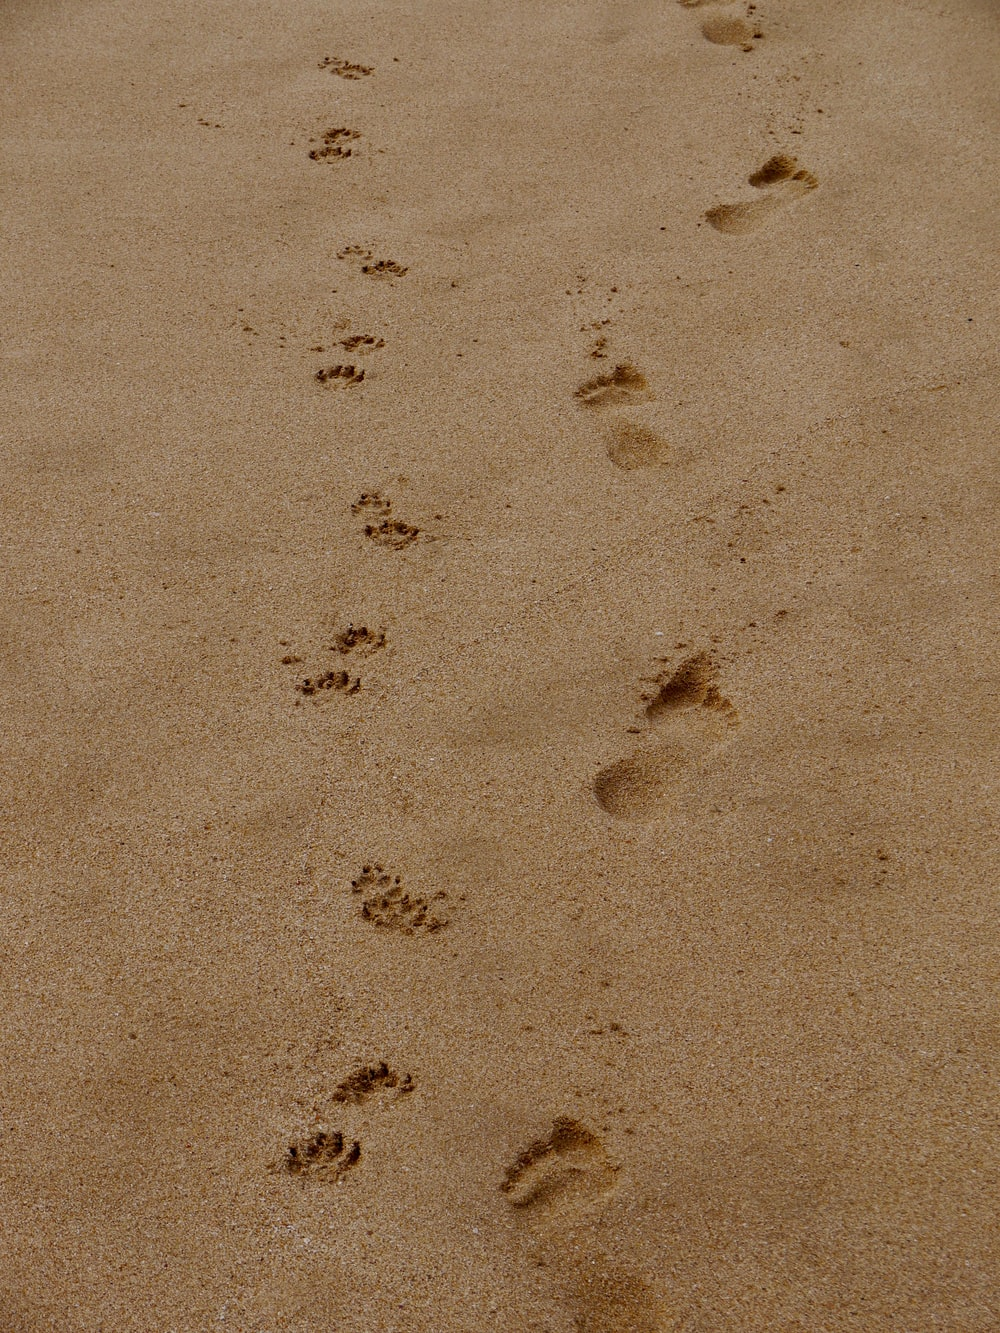 Footprints In The Sand Pictures | Download Free Images on ...